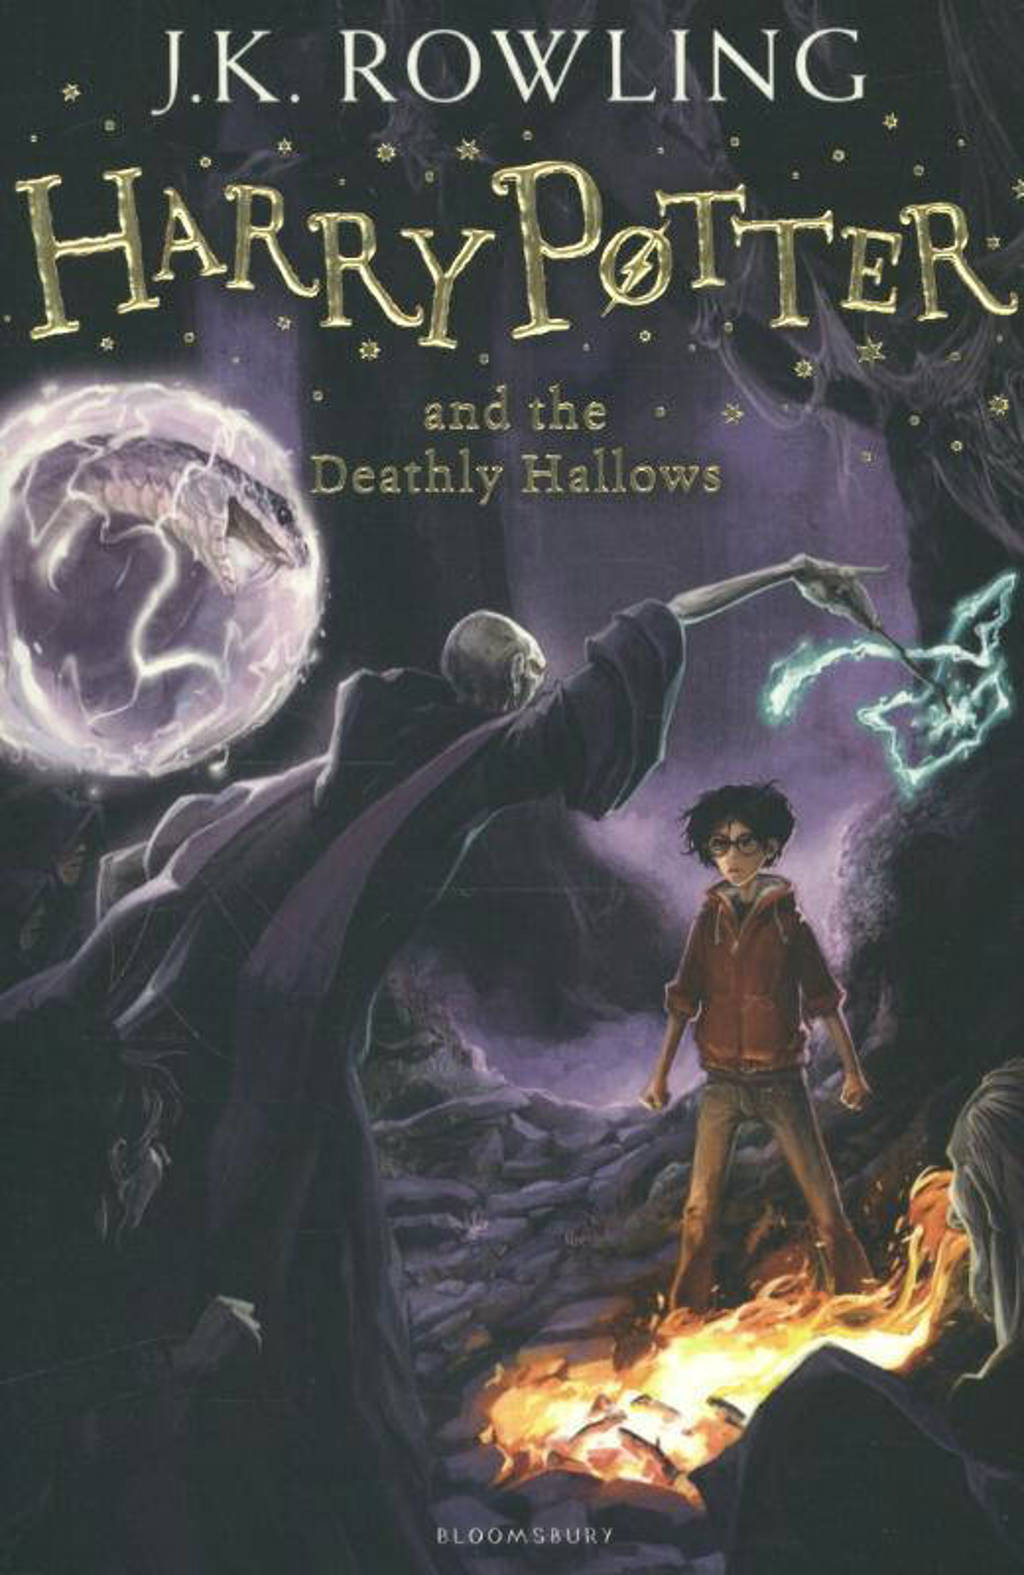 Harry Potter and the Deathly Hallows - Rowling, J K